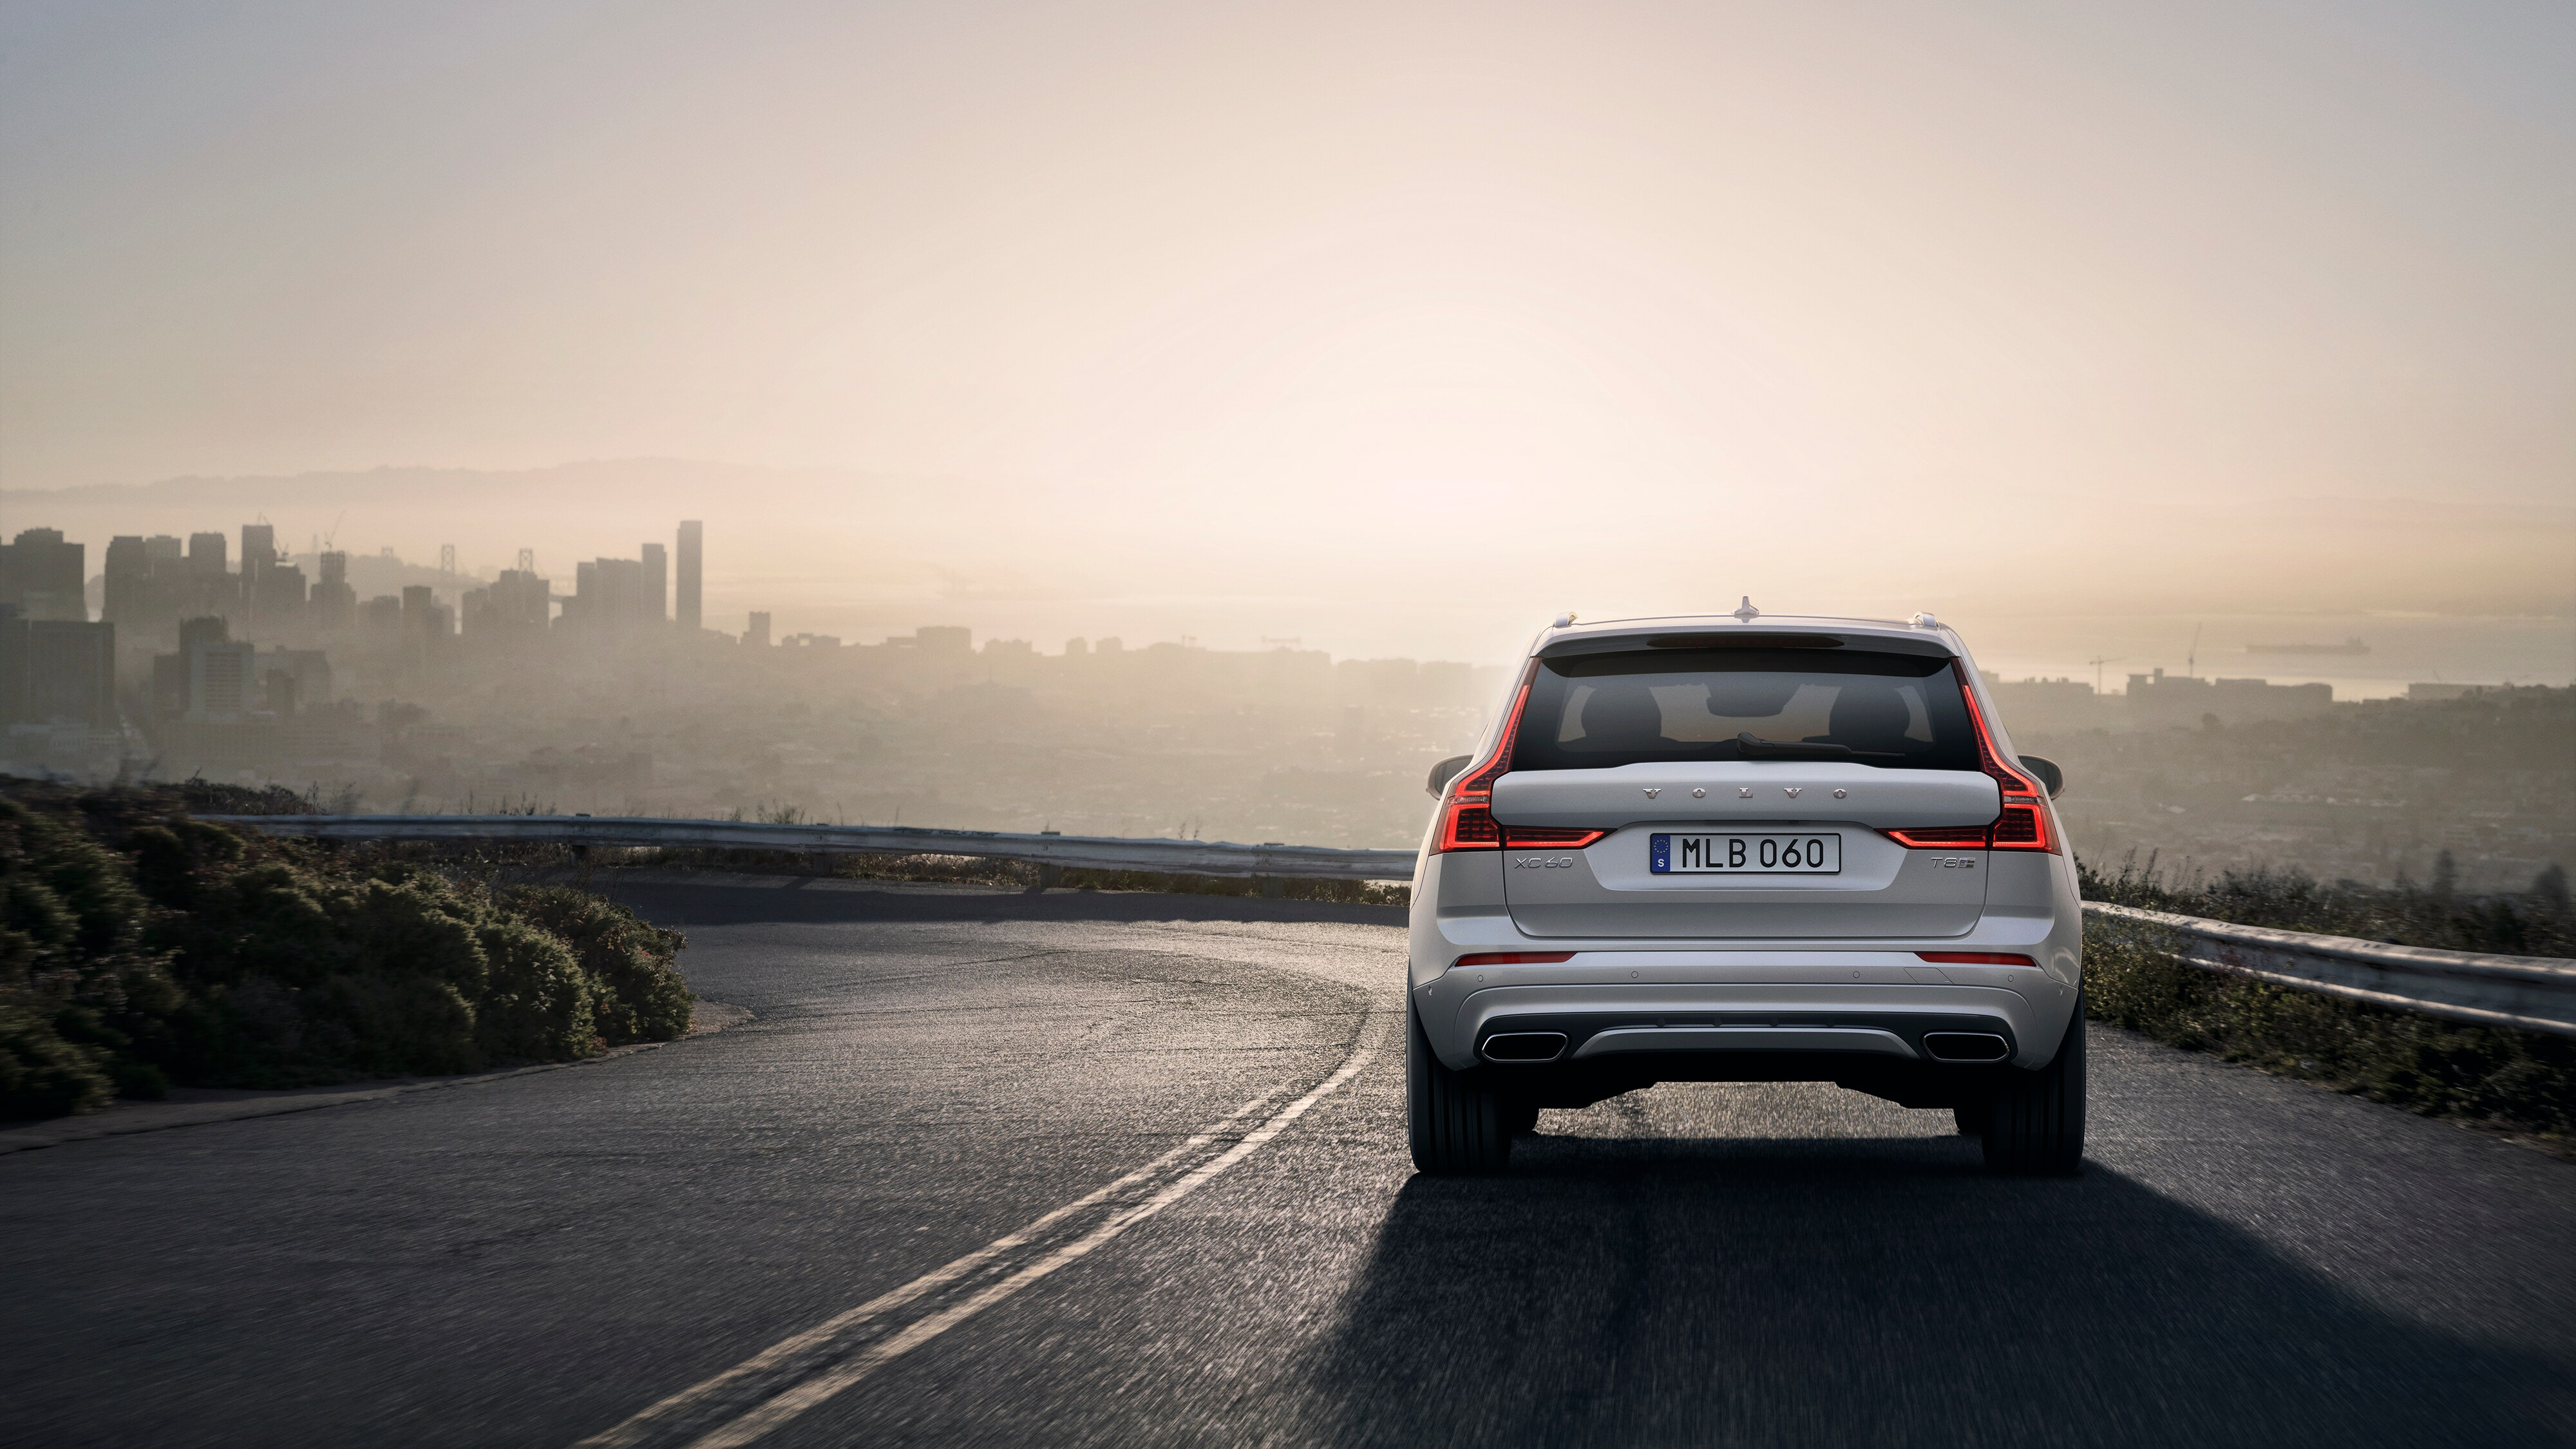 The Sporty new Volvo XC60 R-Design SUV driving on a road outside the city